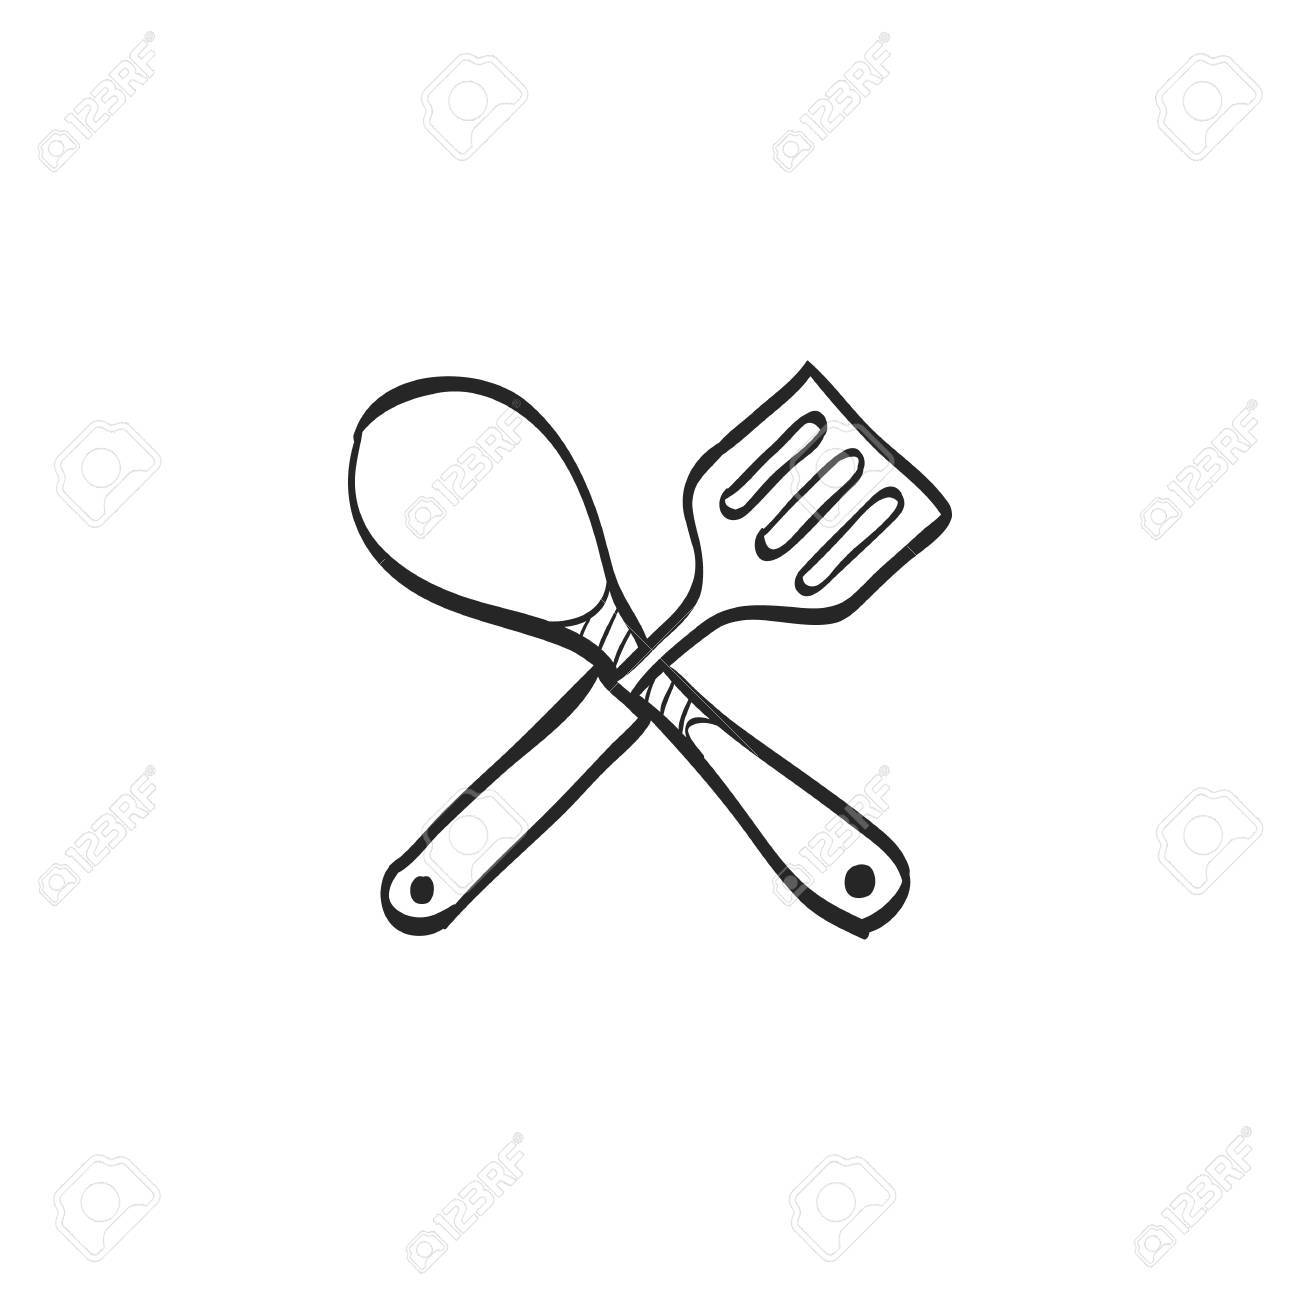 1300x1300 Spatula Icon In Doodle Sketch Lines. Cooking Utensil Kitchen